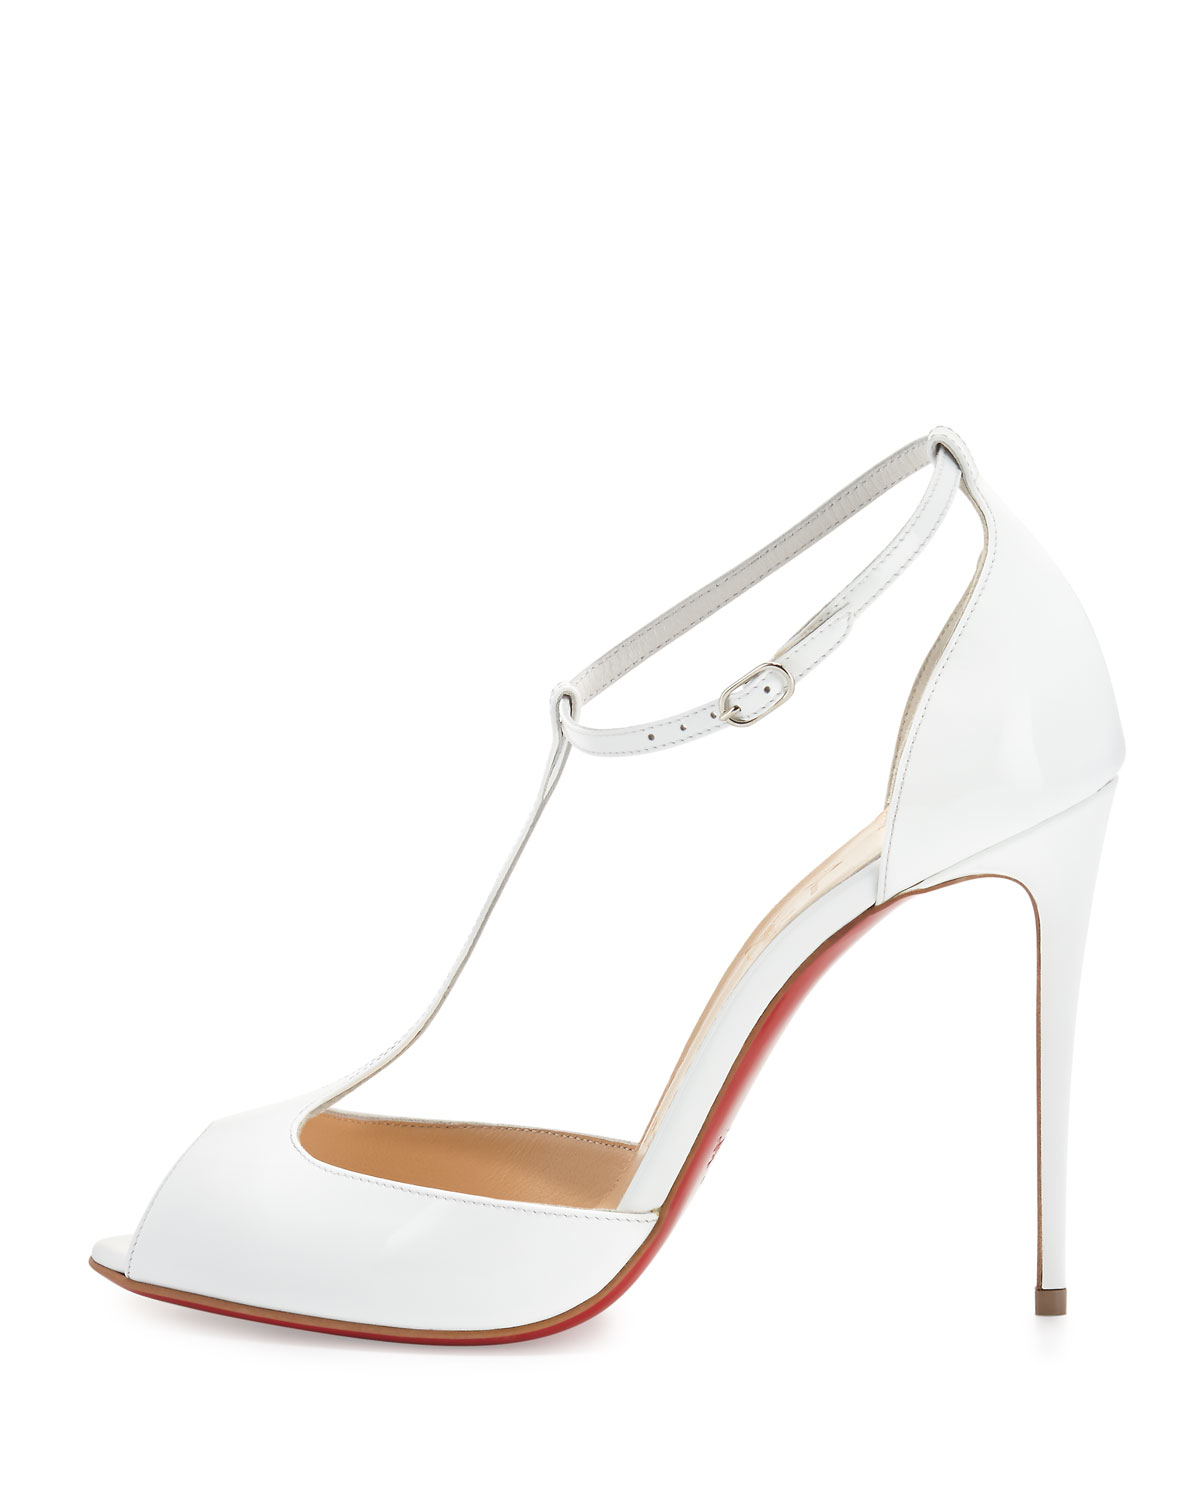 ca2cfaec613 Gallery. Previously sold at  Neiman Marcus · Women s Christian Louboutin  Senora ...